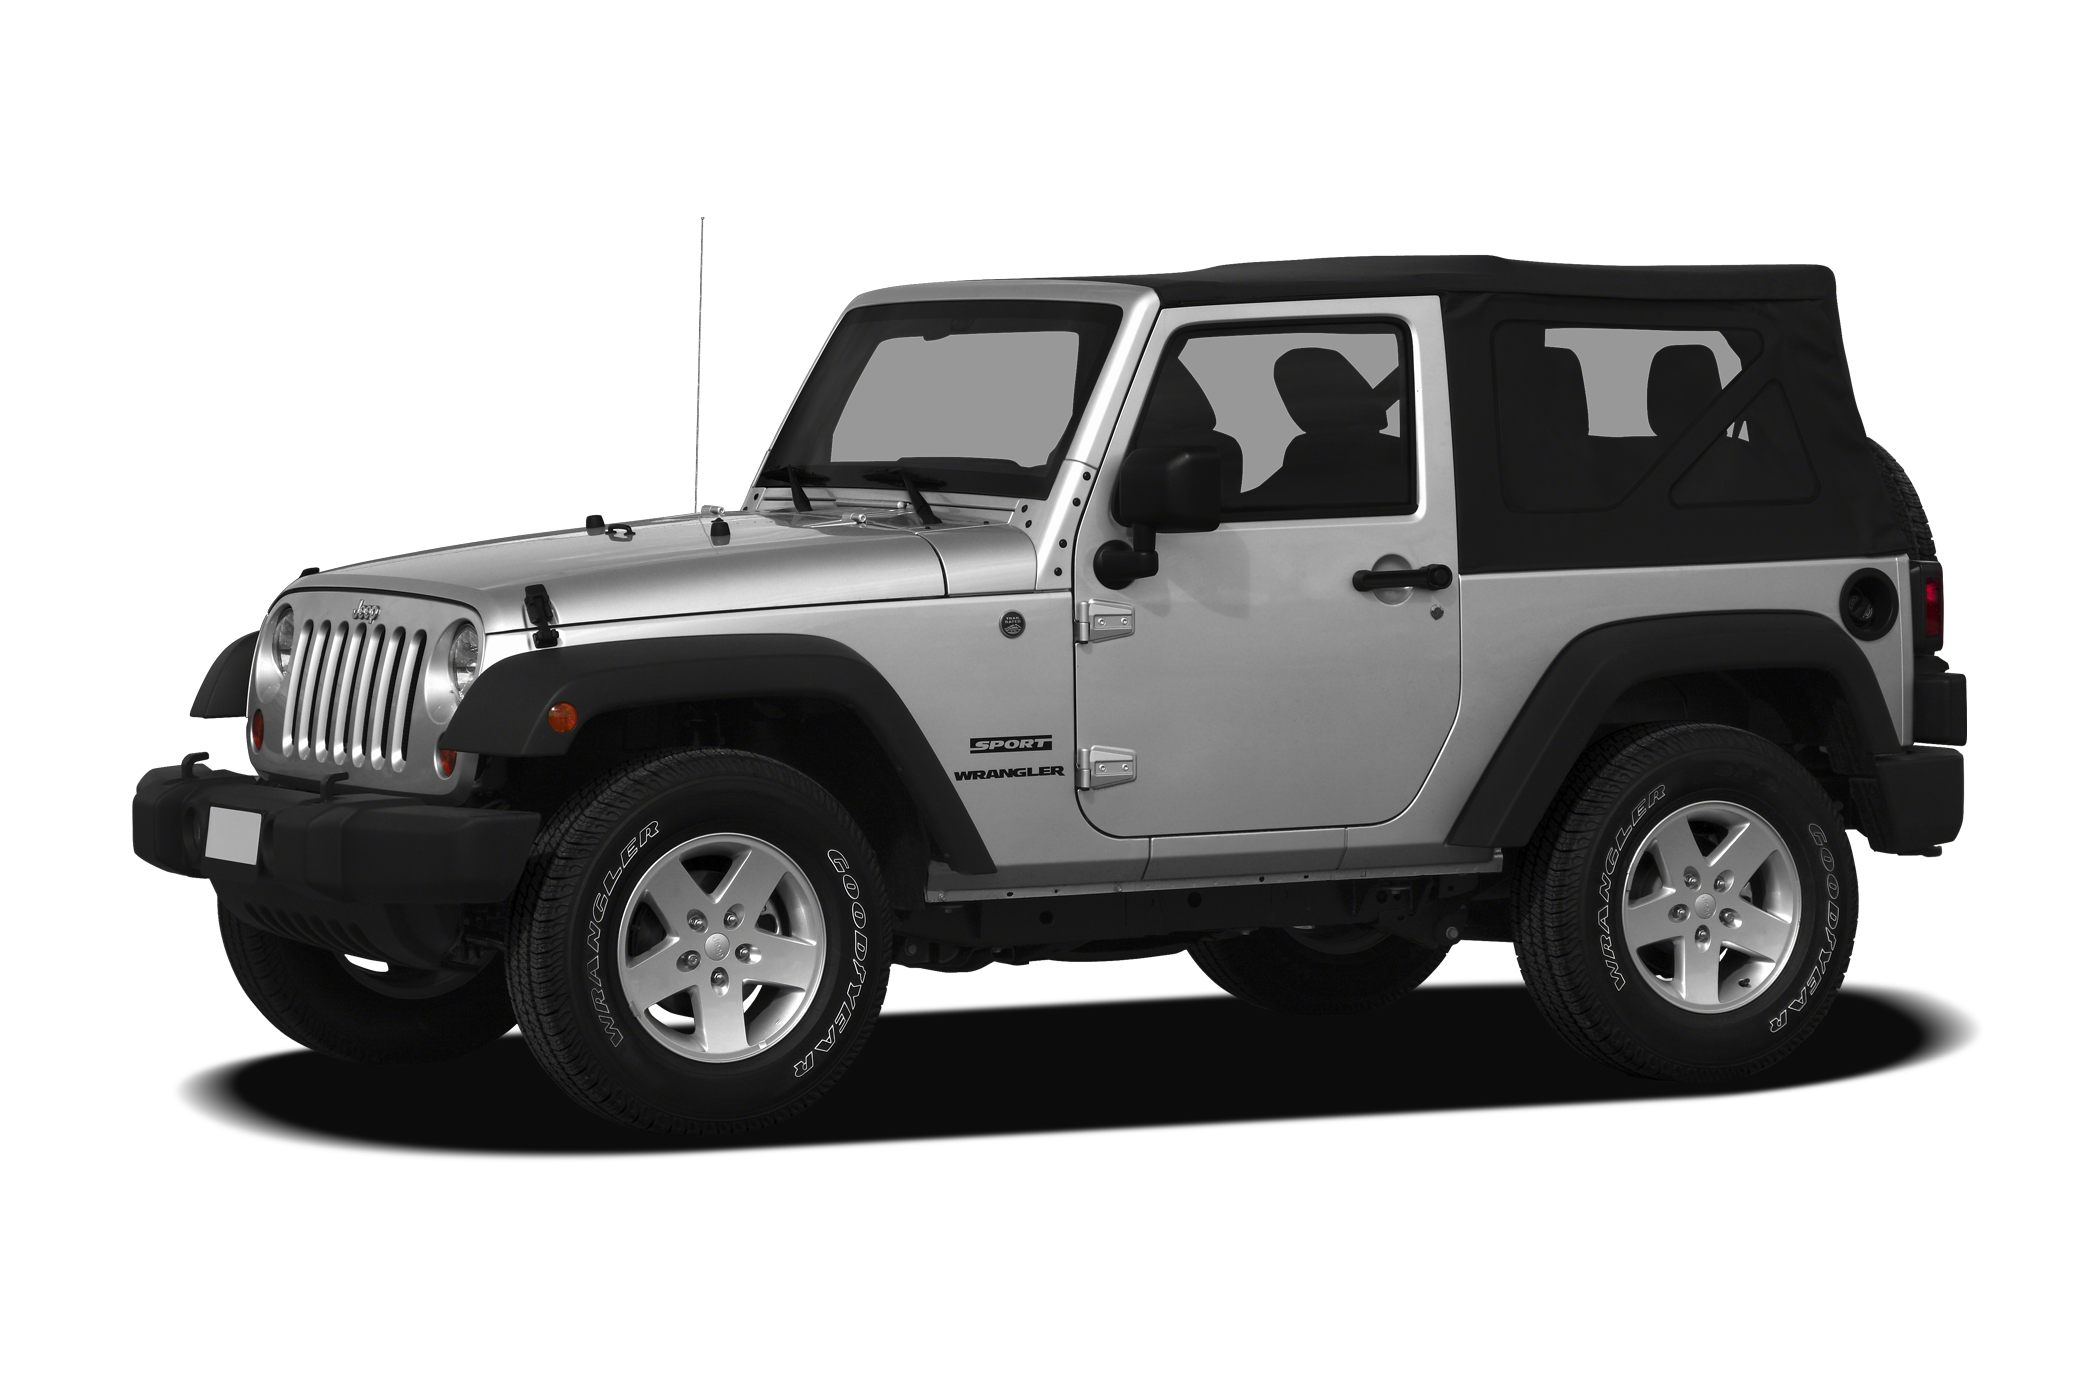 fitness large jeep wrangler class benz mods amazing unlimited great city california sport ca auto conversion